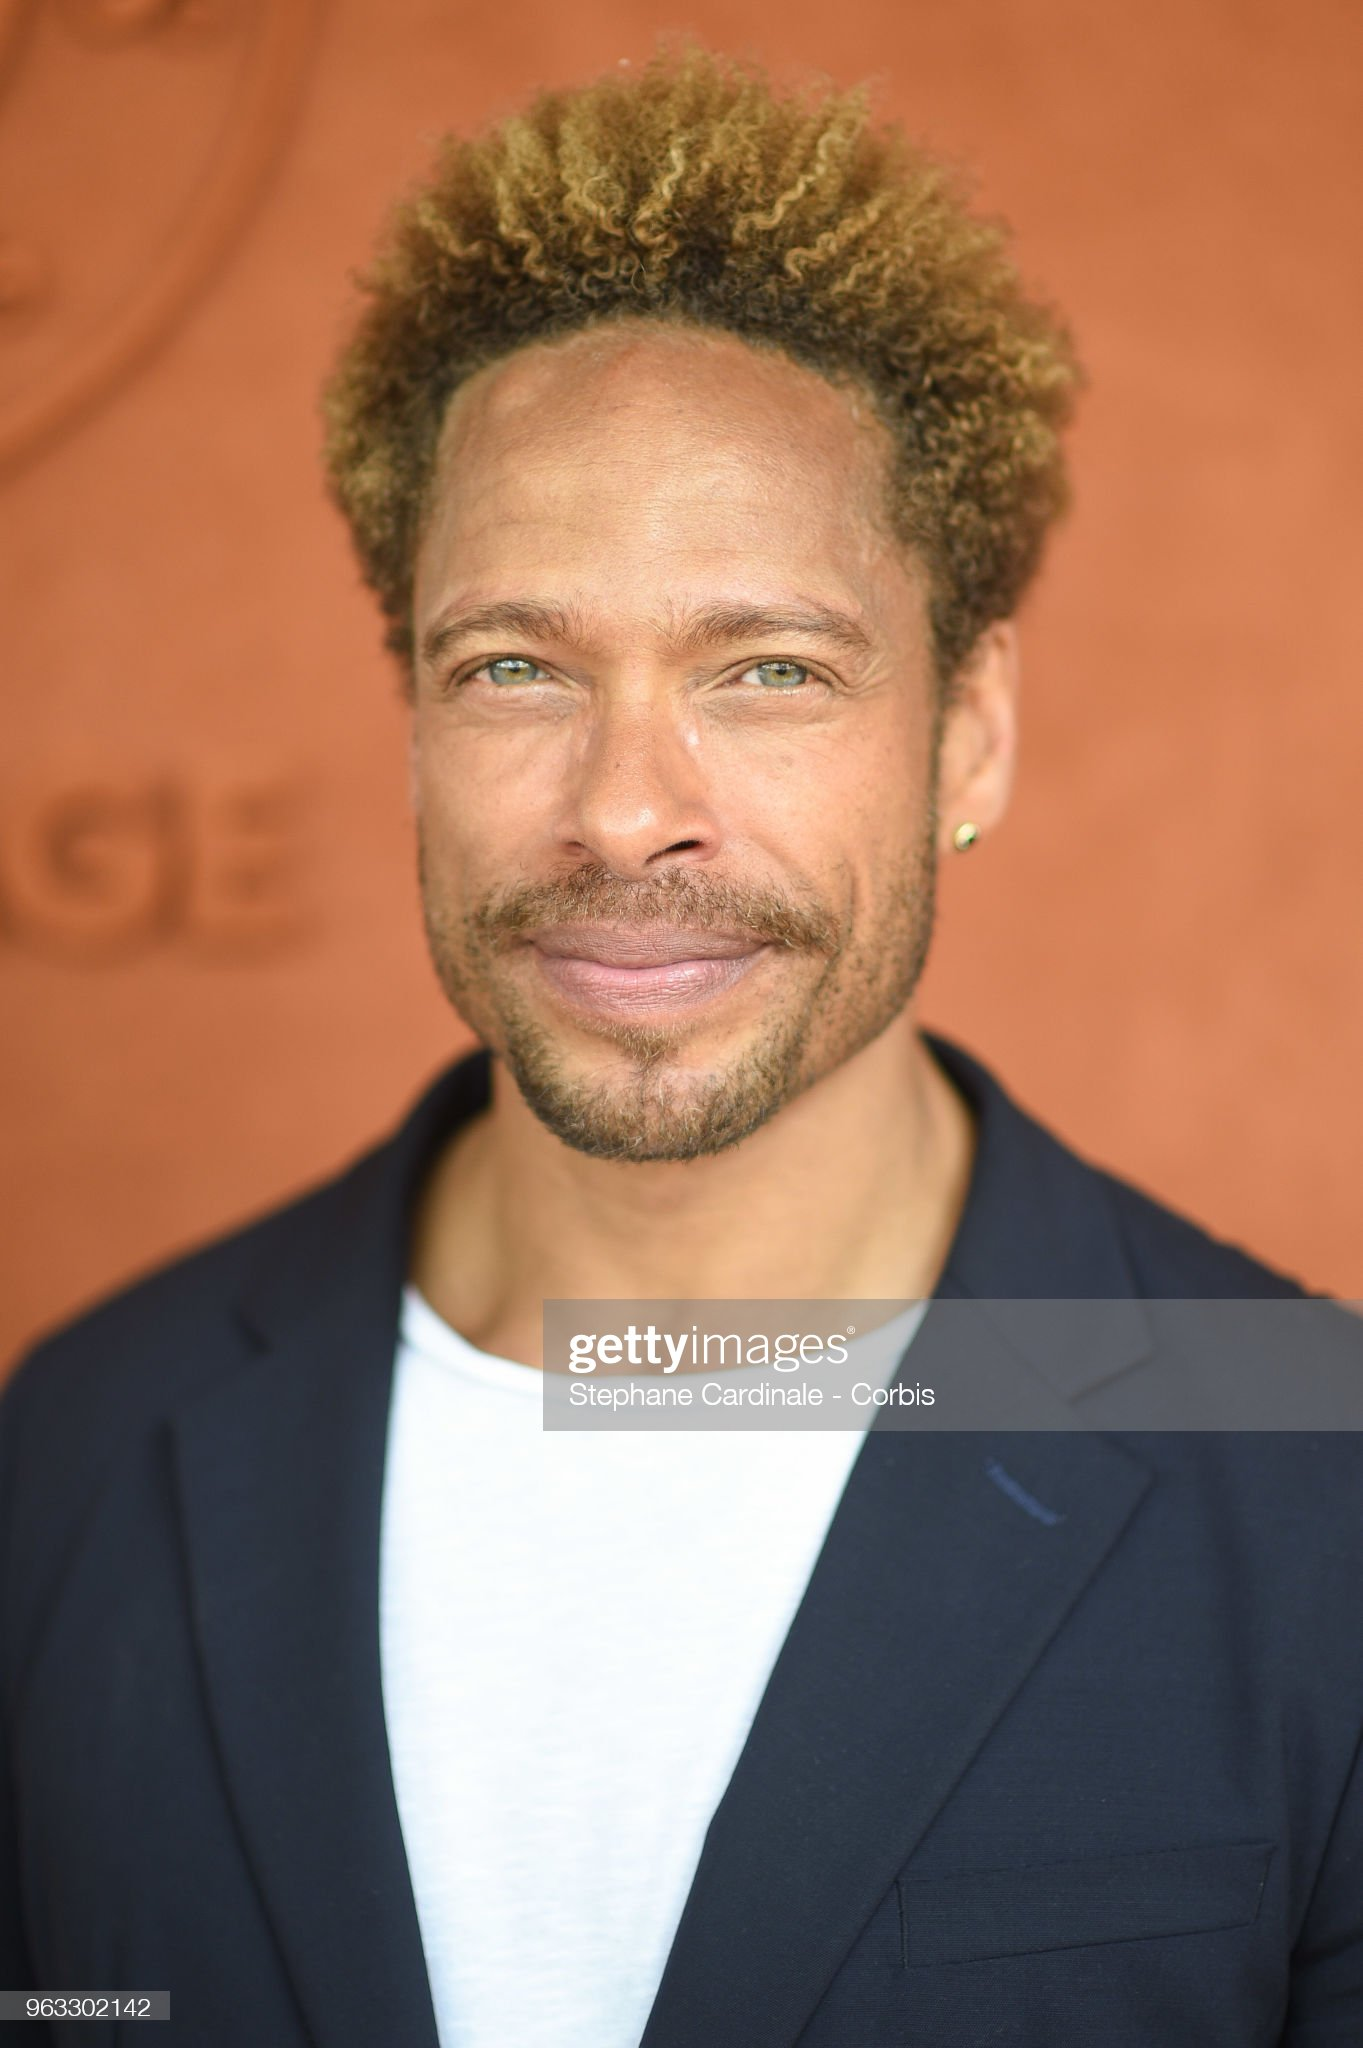 COLOR DE OJOS (clasificación y debate de personas famosas) - Página 11 Actor-gary-dourdan-attends-the-2018-french-open-day-two-at-roland-on-picture-id963302142?s=2048x2048